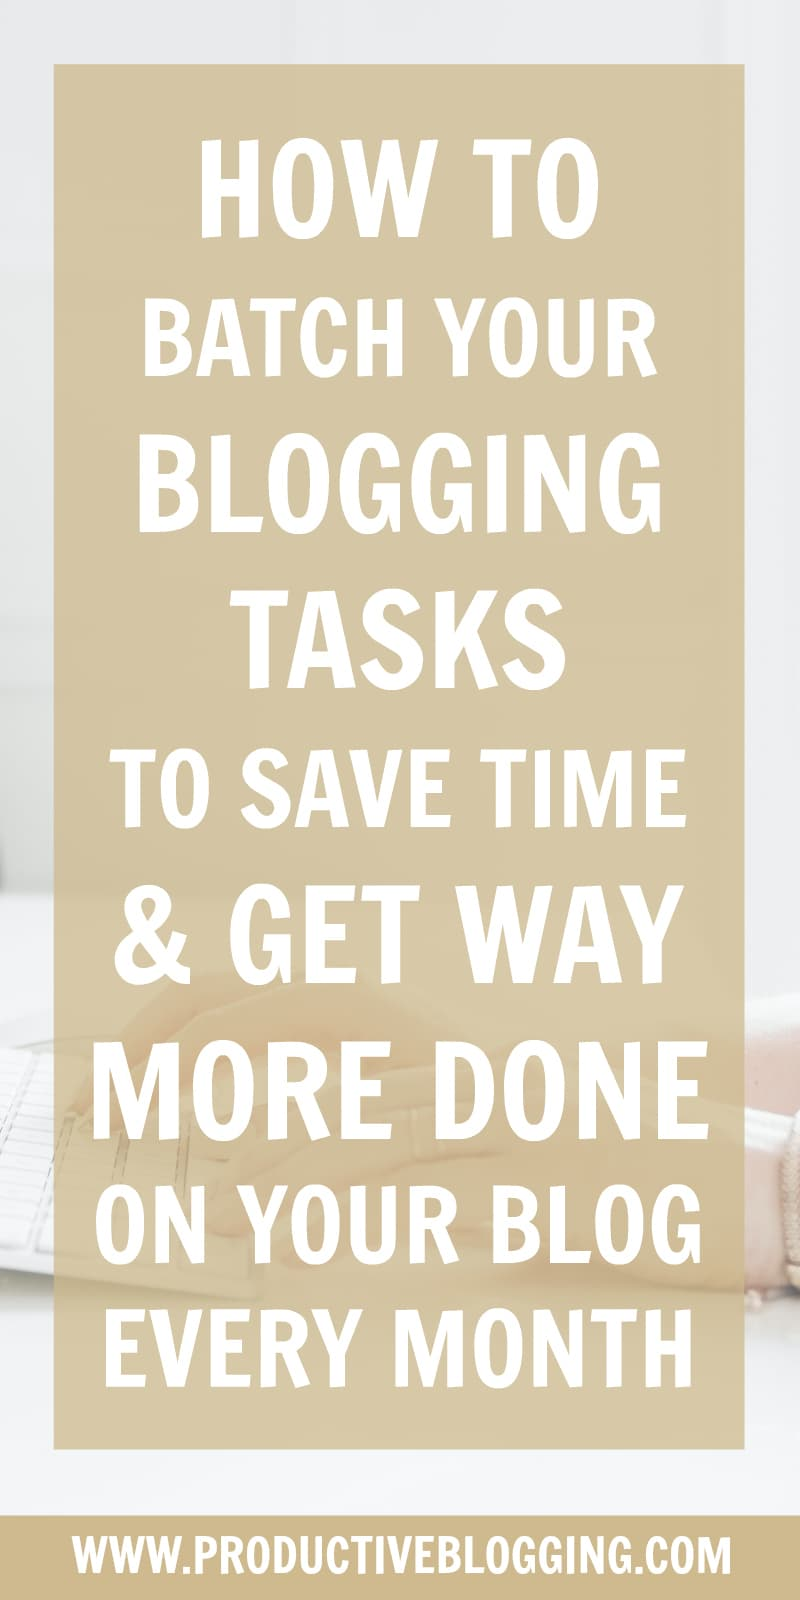 Do you wish you could be more productive? Work less and get more done? Well you can! Task-batching will help you save time AND get way more done on your blog every month. Here's how… #batching #taskbatching #batchingforbloggers #savetime #getmoredone #getthingsdone #productivity #productivitytips #productivityhacks #blogging #bloggers #bloggingtips #achievemore #timemanagement #efficiency #goals #blogginggoals #blogsmarternotharder #productiveblogging